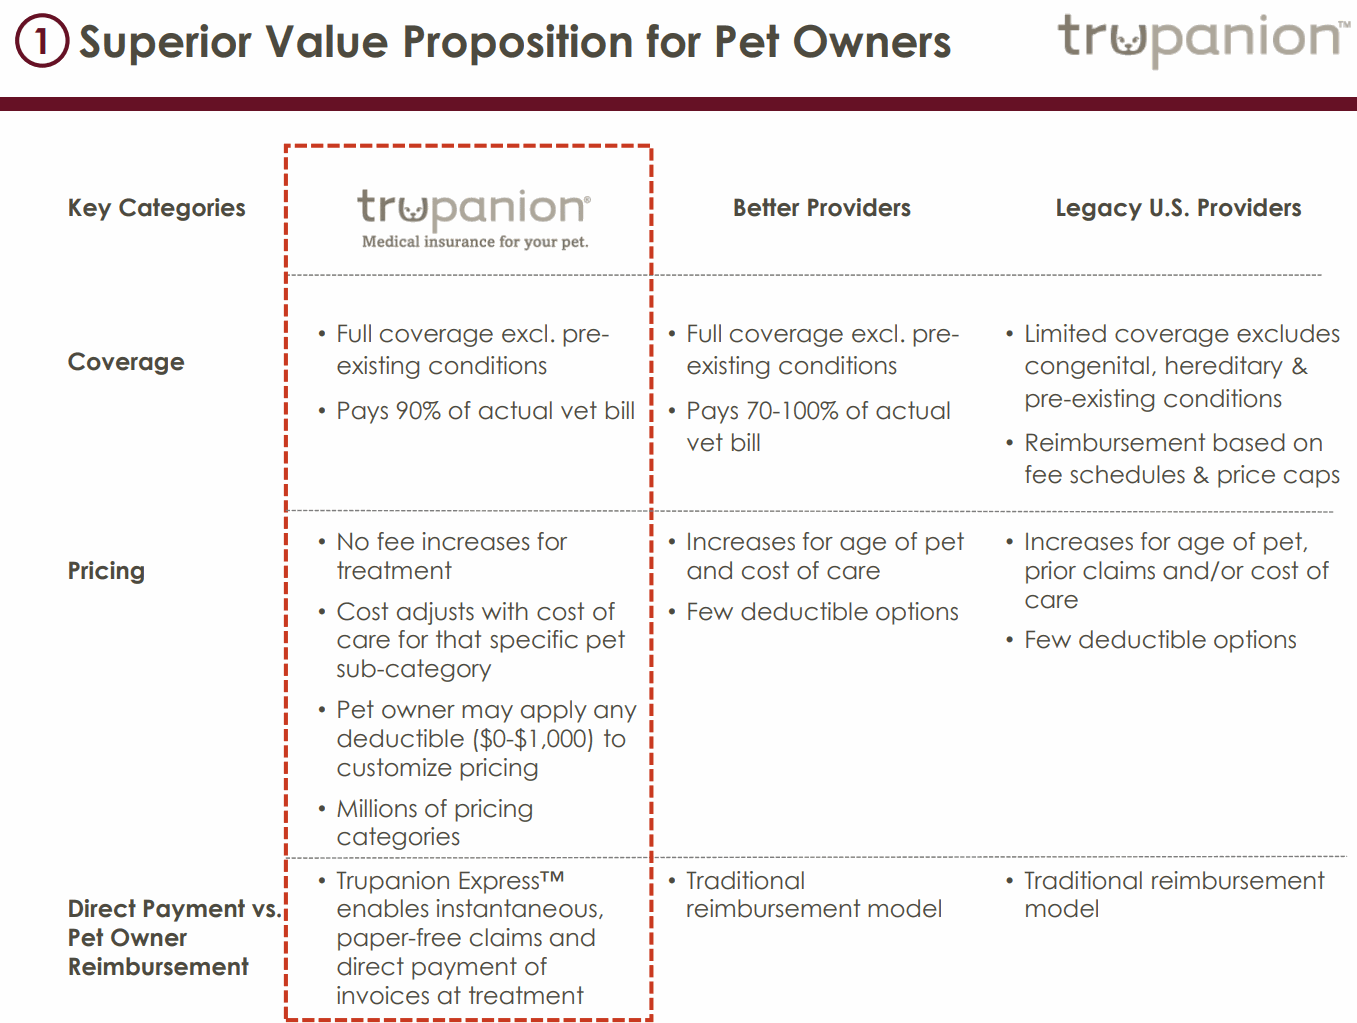 trupanion-for-Pet-Owners